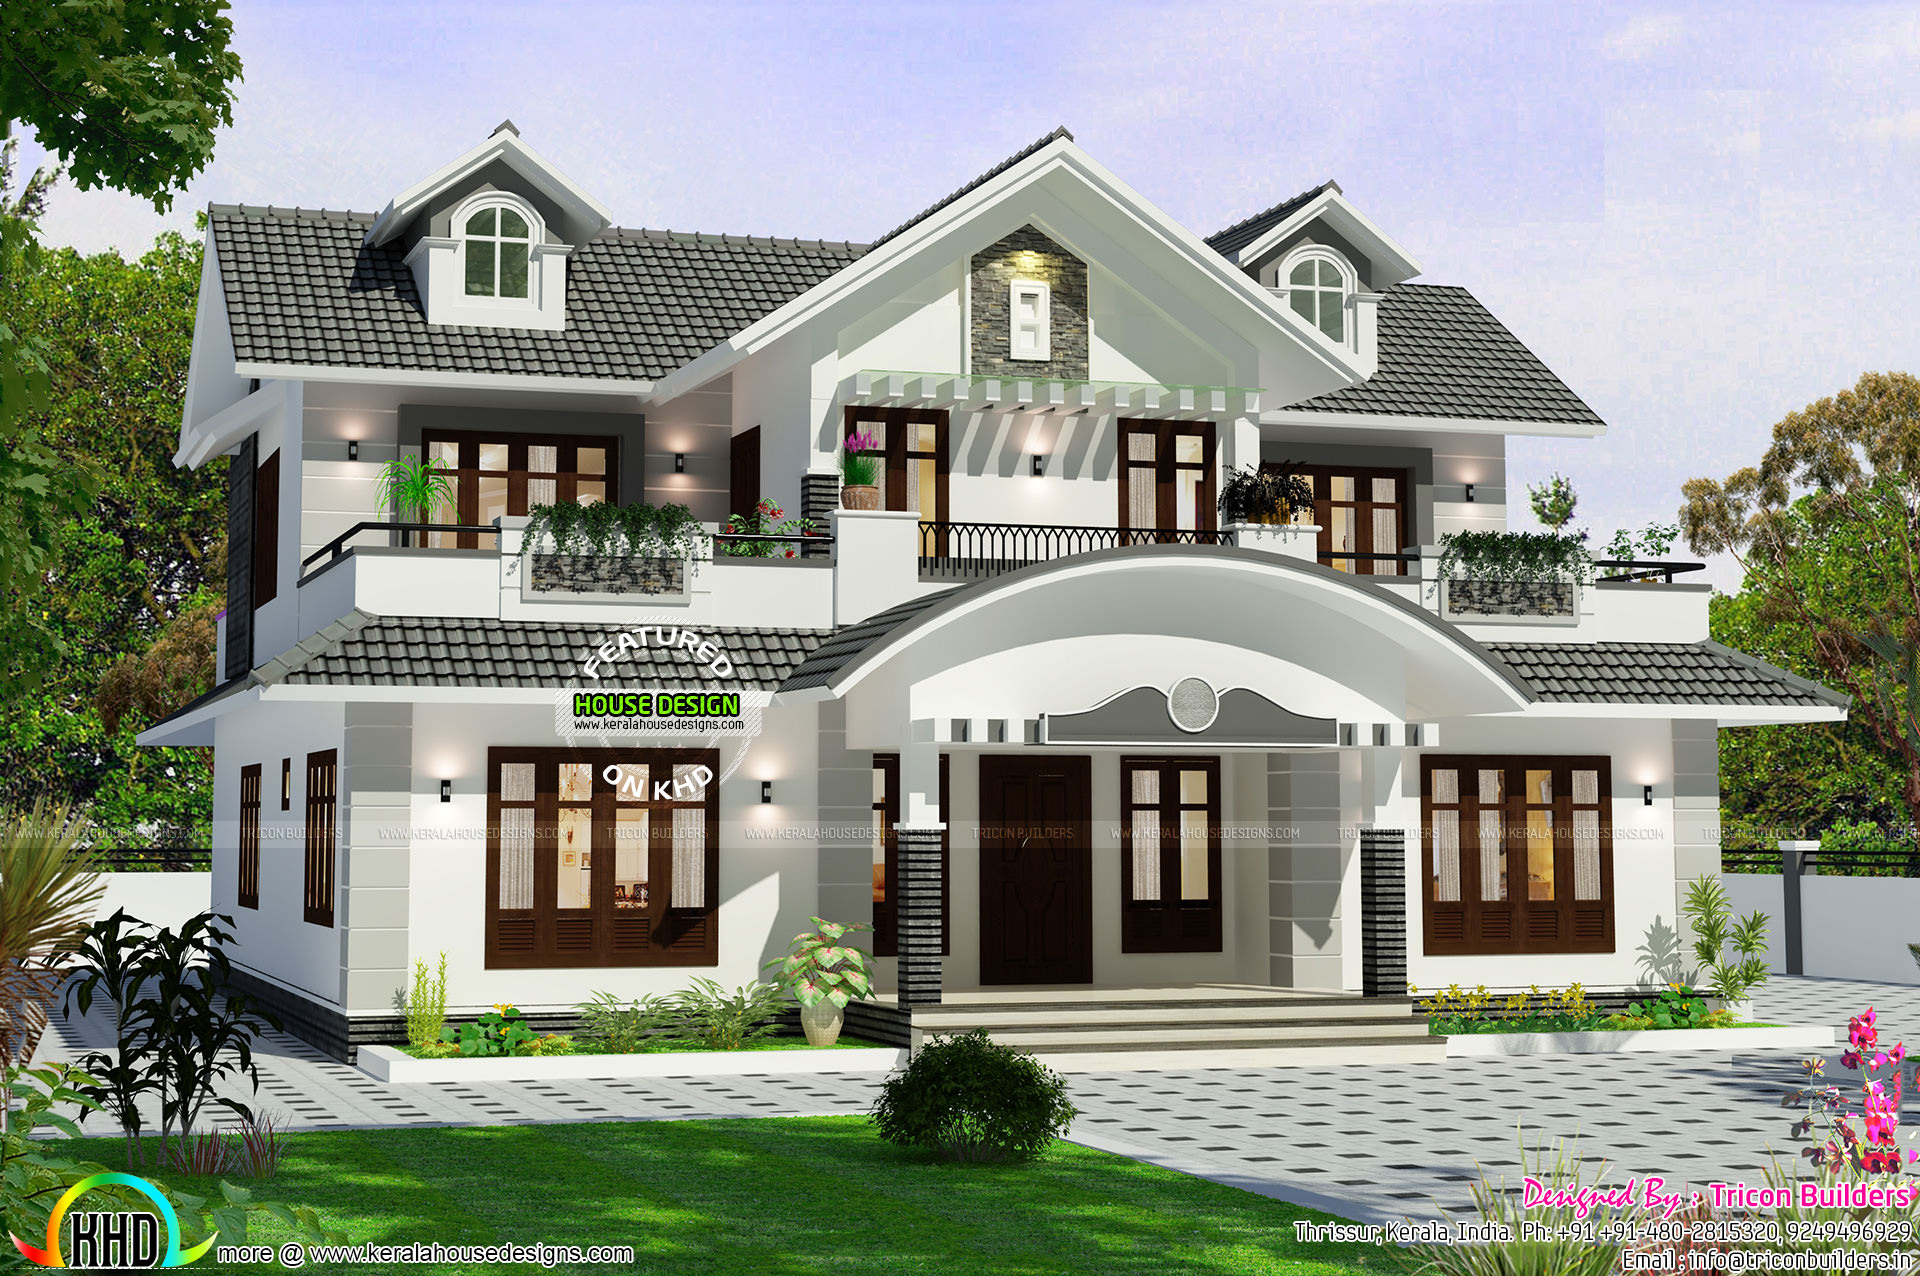 Designer Home By Tricon Builders Kerala Home Design And